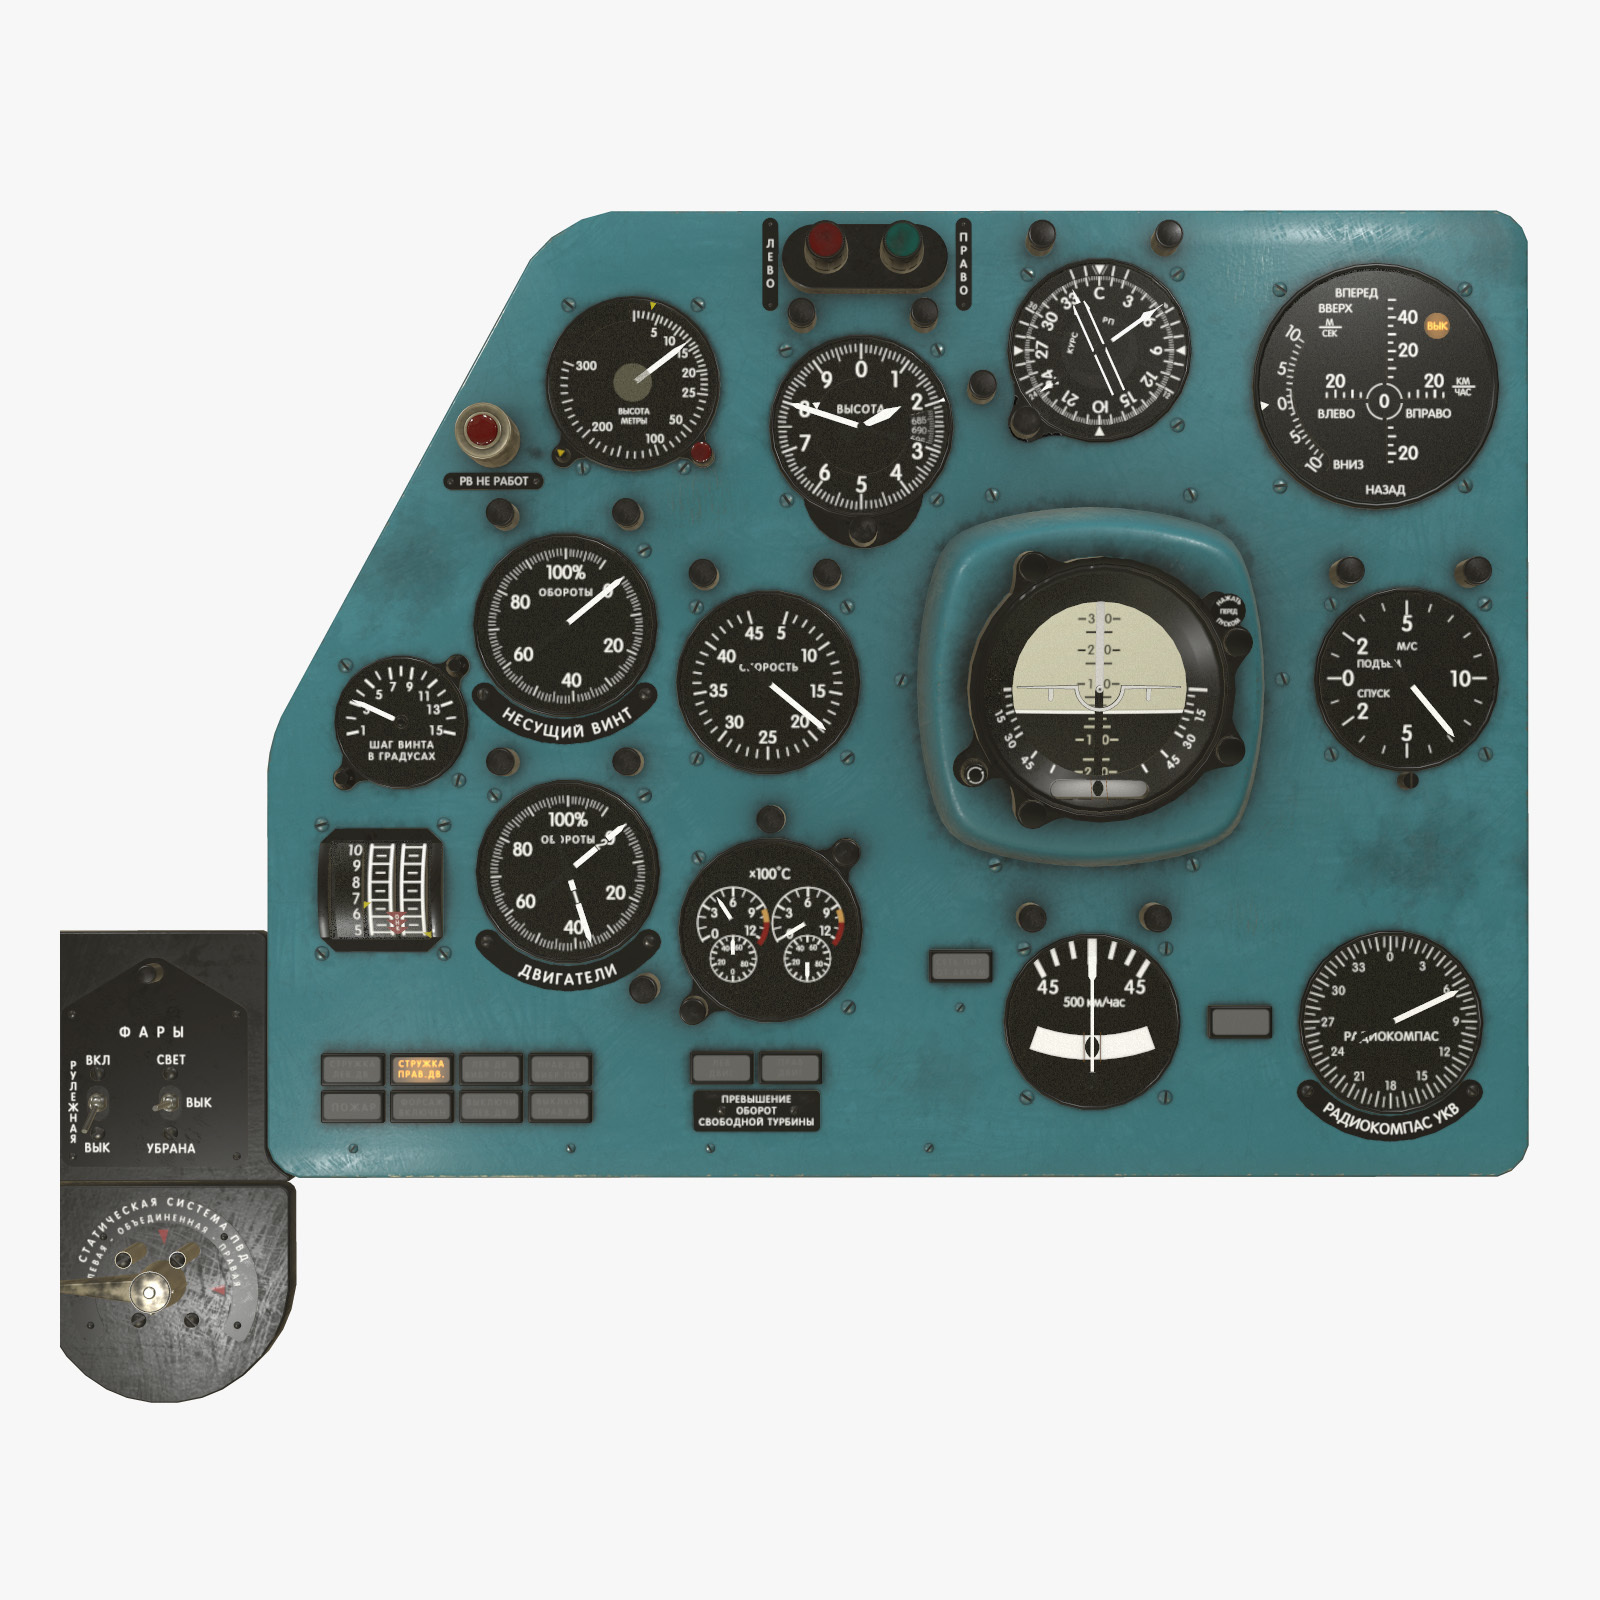 Mi-8MT Mi-17MT Left Panels Board Russian -Extended License by pukamakara